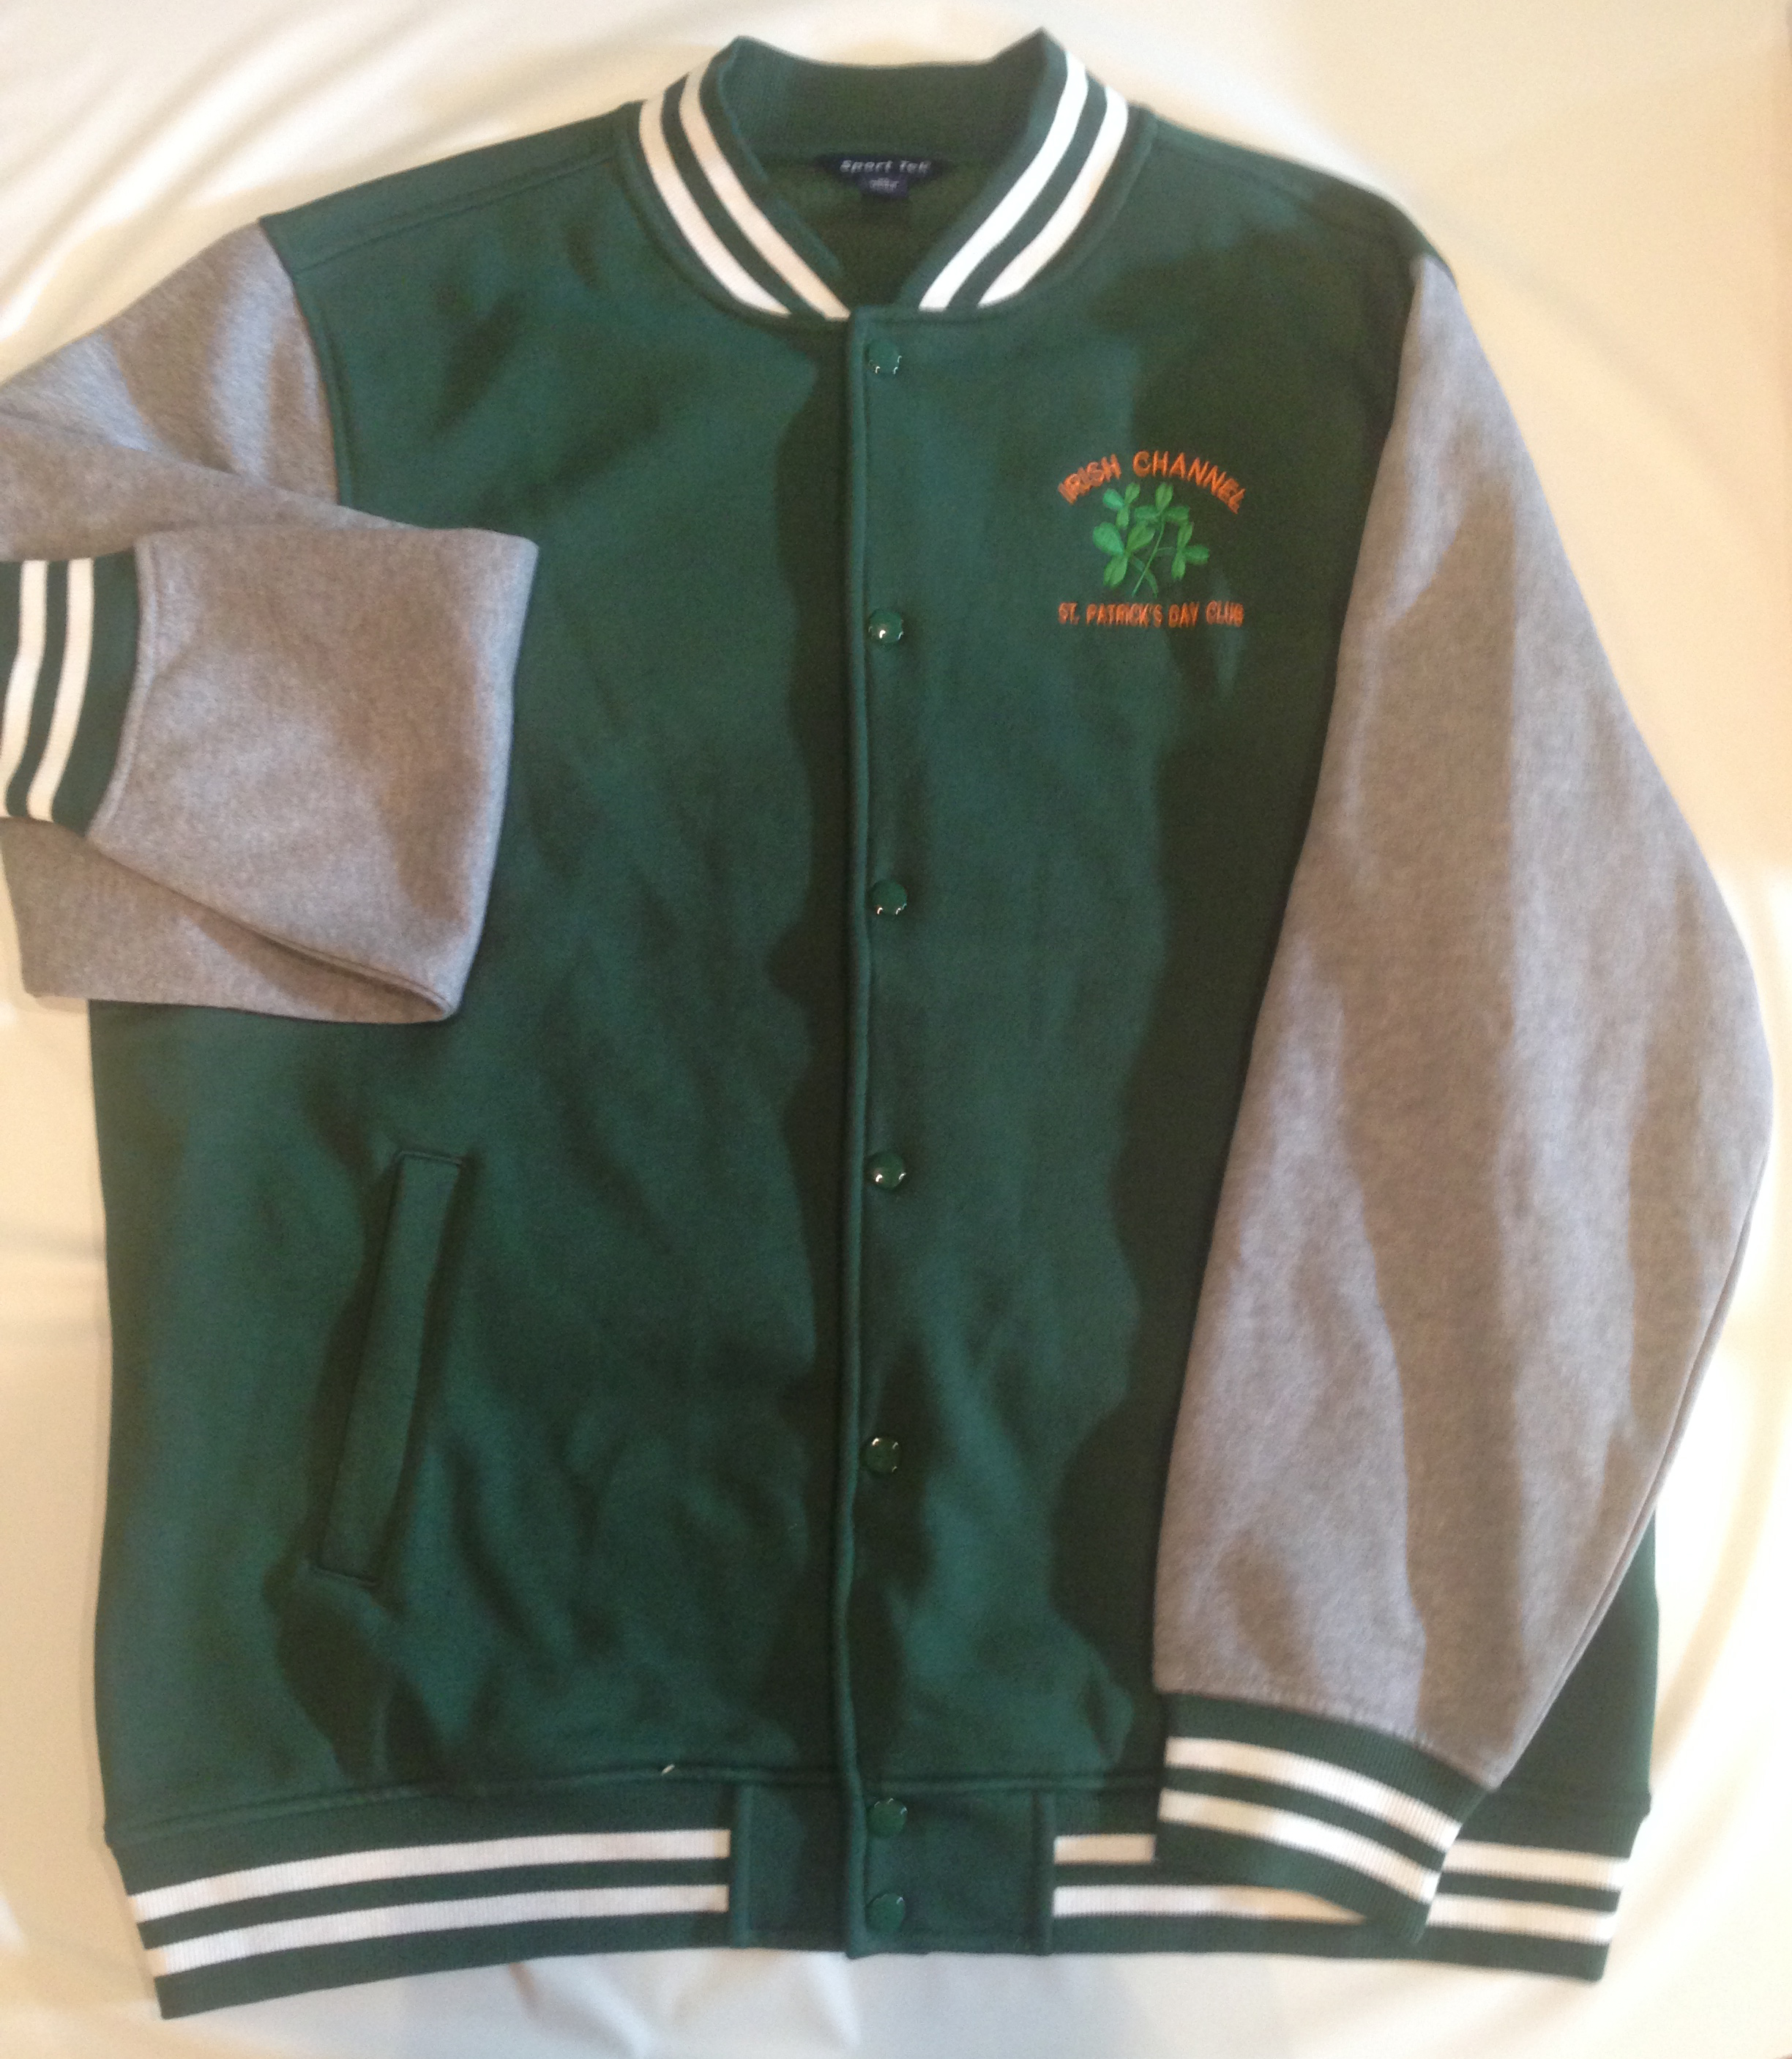 Embroidered fleece letterman jacket irish channel st